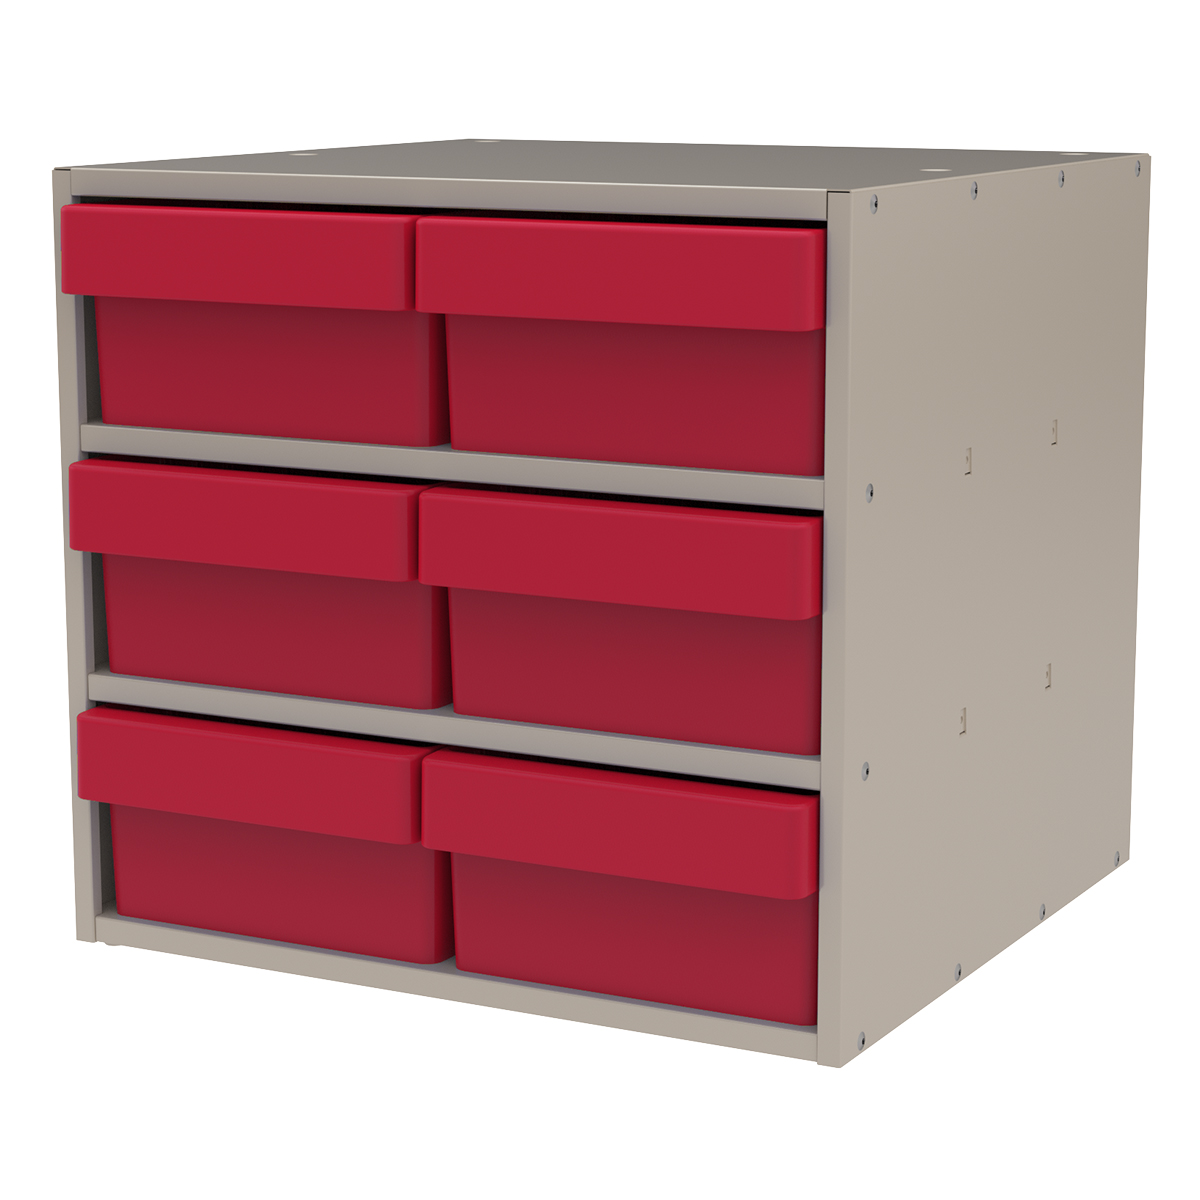 Item DISCONTINUED by Manufacturer.  Modular Cabinet, 18x17x16, 6 Drawers, Putty/Red.  This item sold in carton quantities of 1.